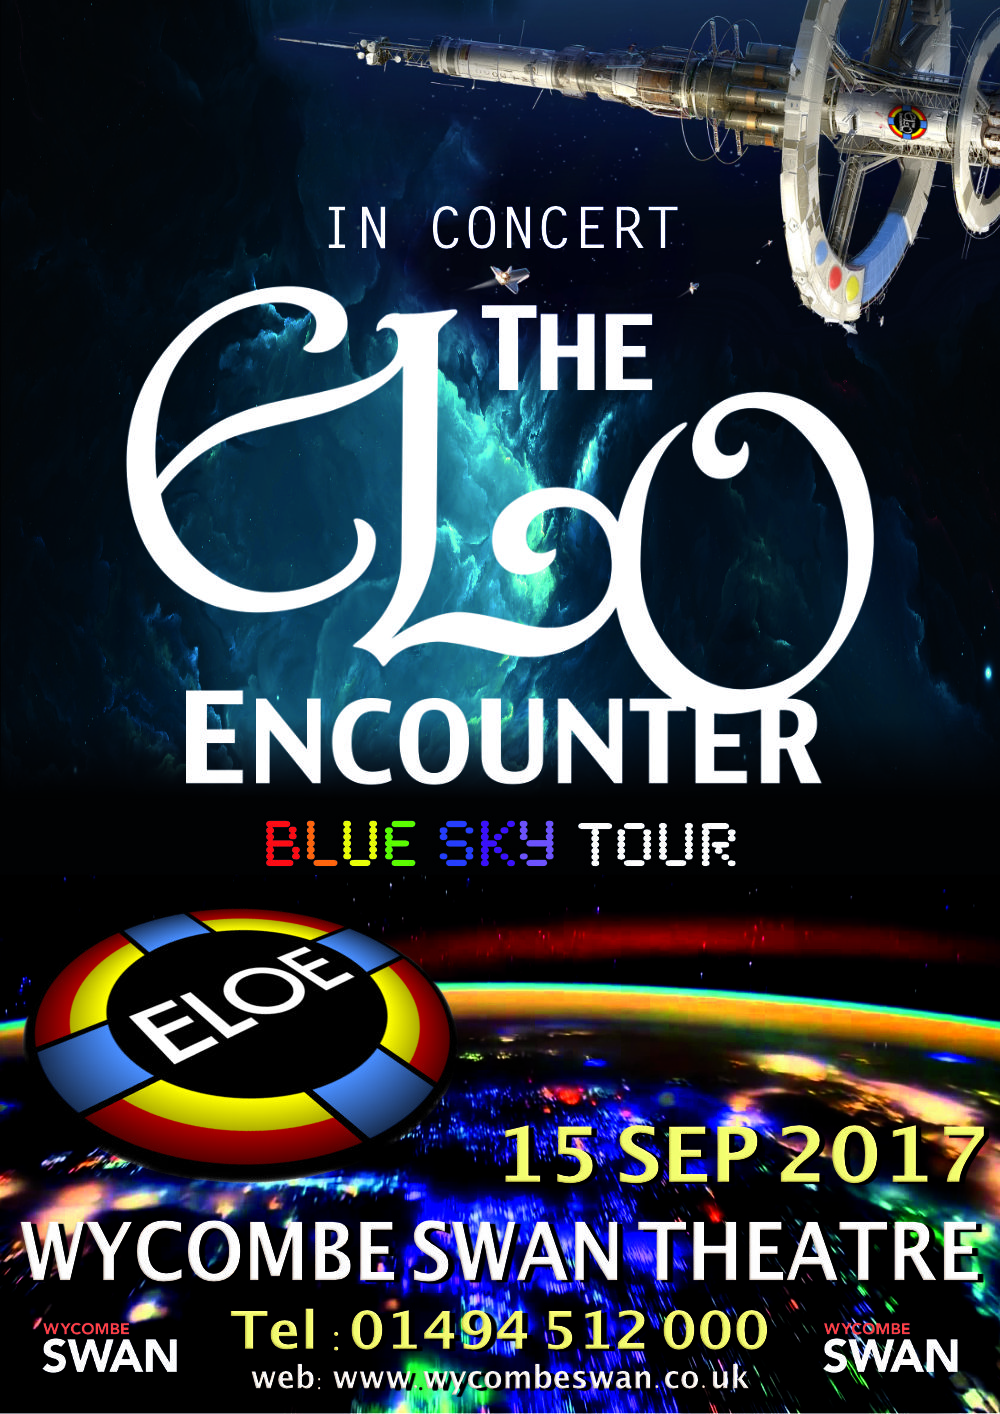 Wycombe Swan Theatre - ELO Encounter Poster